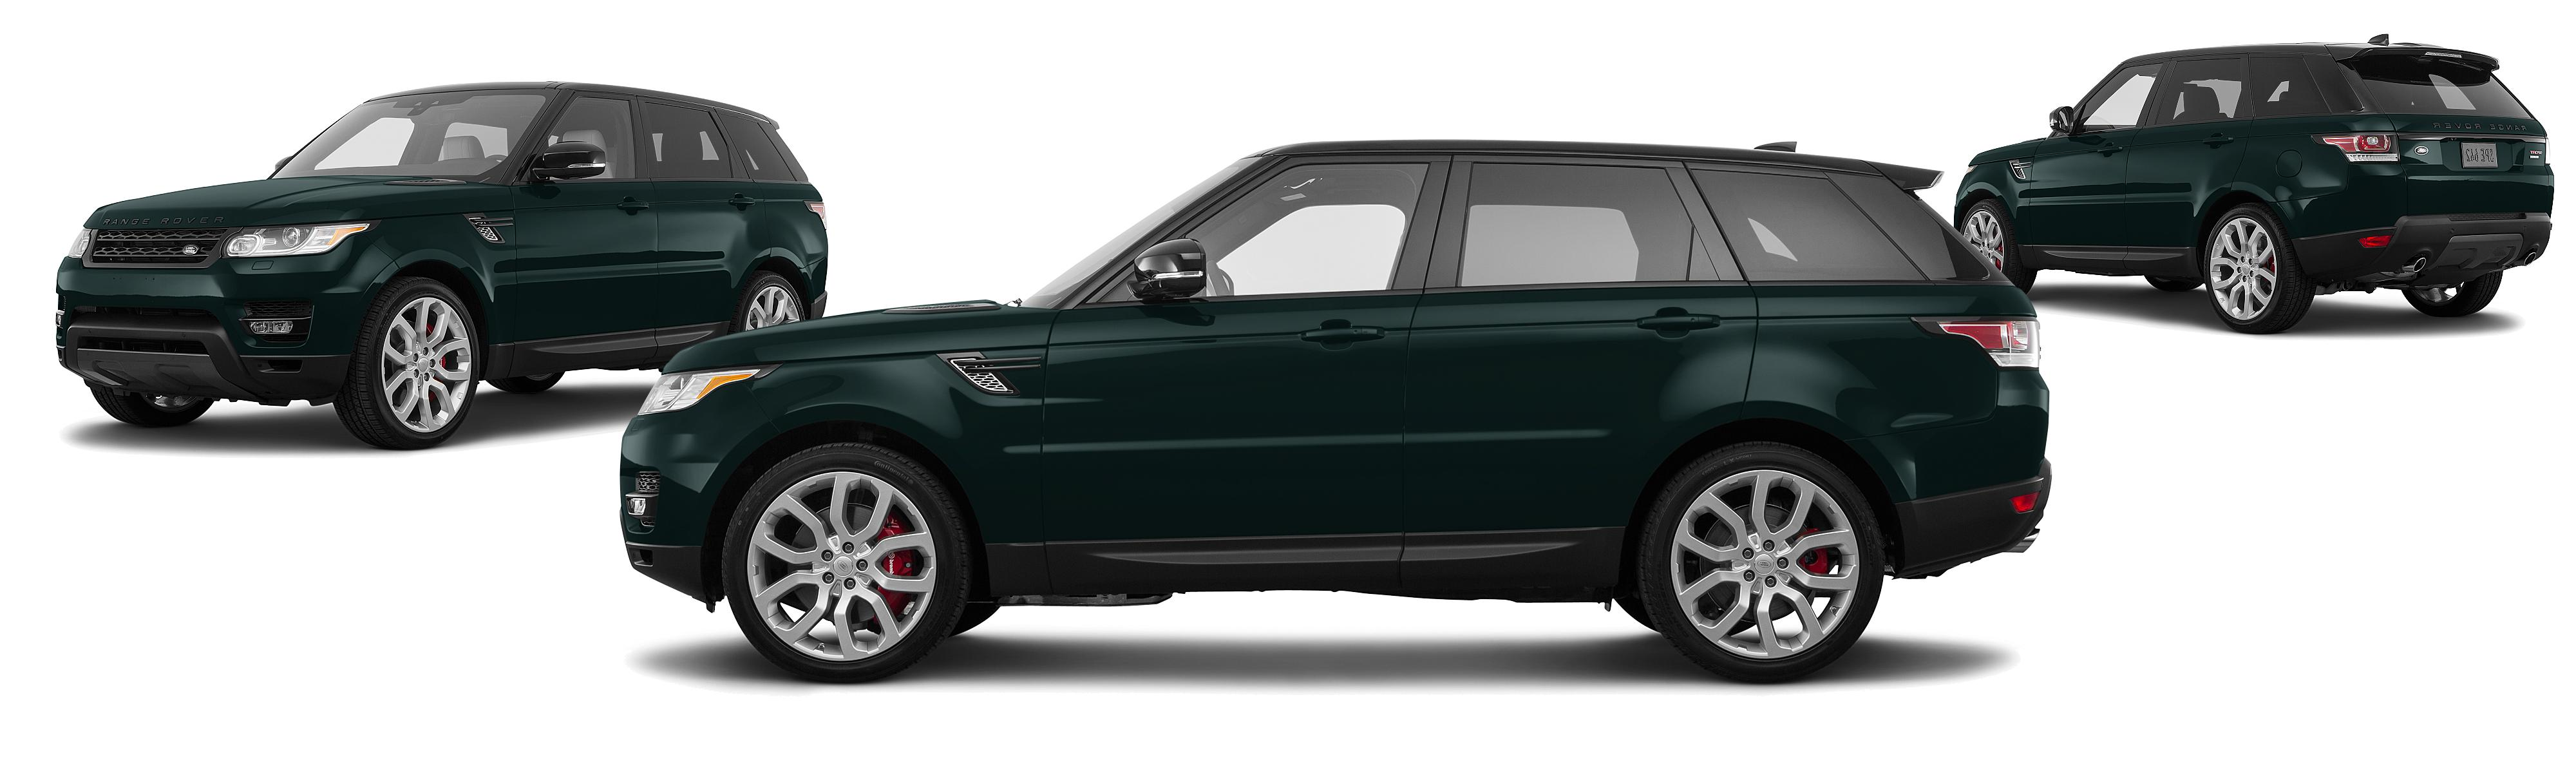 2017 Land Rover Range Rover Sport AWD Supercharged 4dr SUV